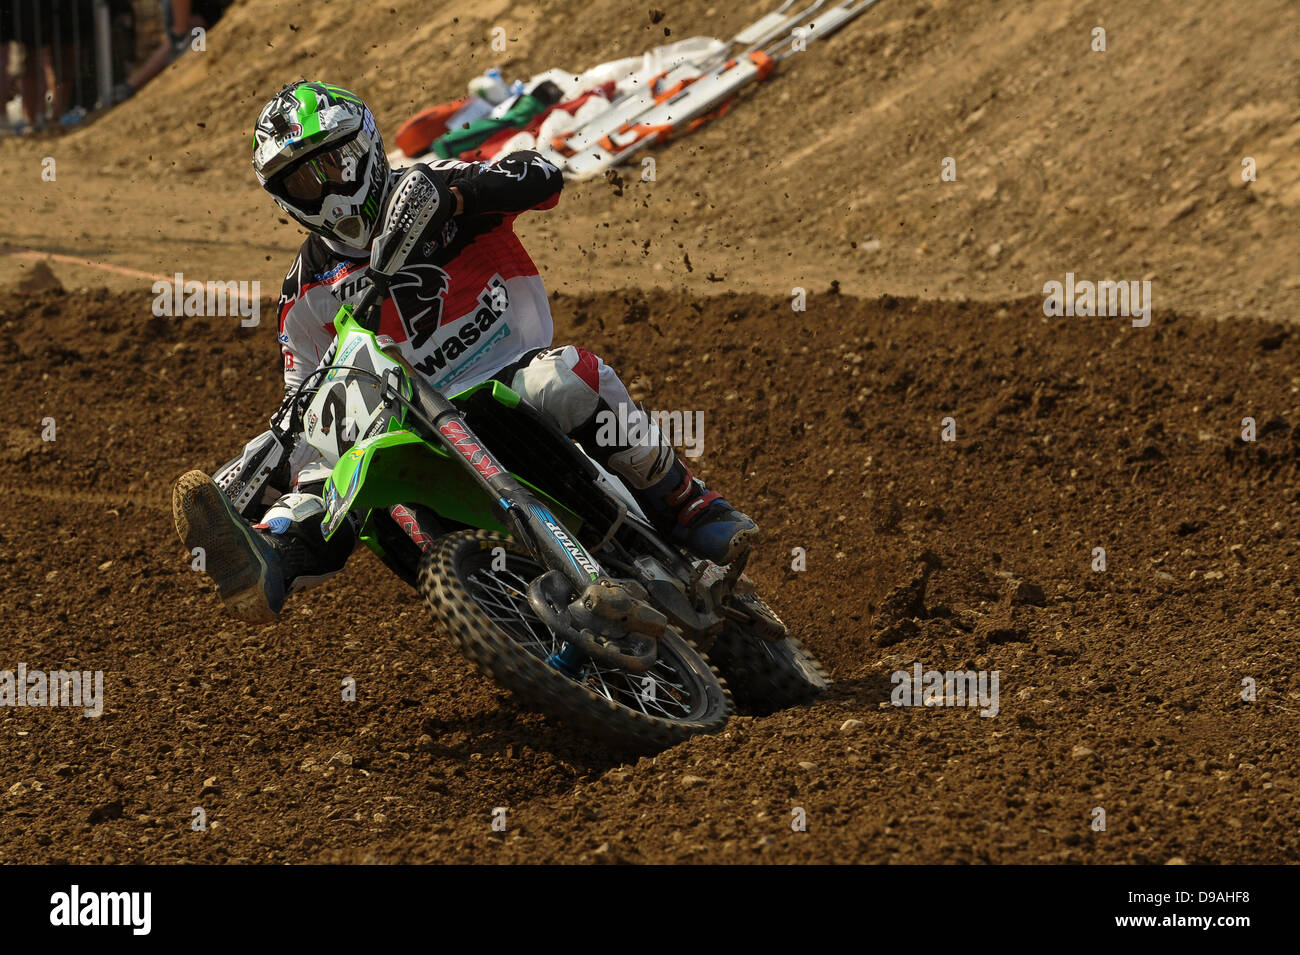 Maggiora, Italy. 16th June, 2013. Number 21 Gautier Paulin during the MX1 World Motocross Championships from Maggiora. - Stock Image